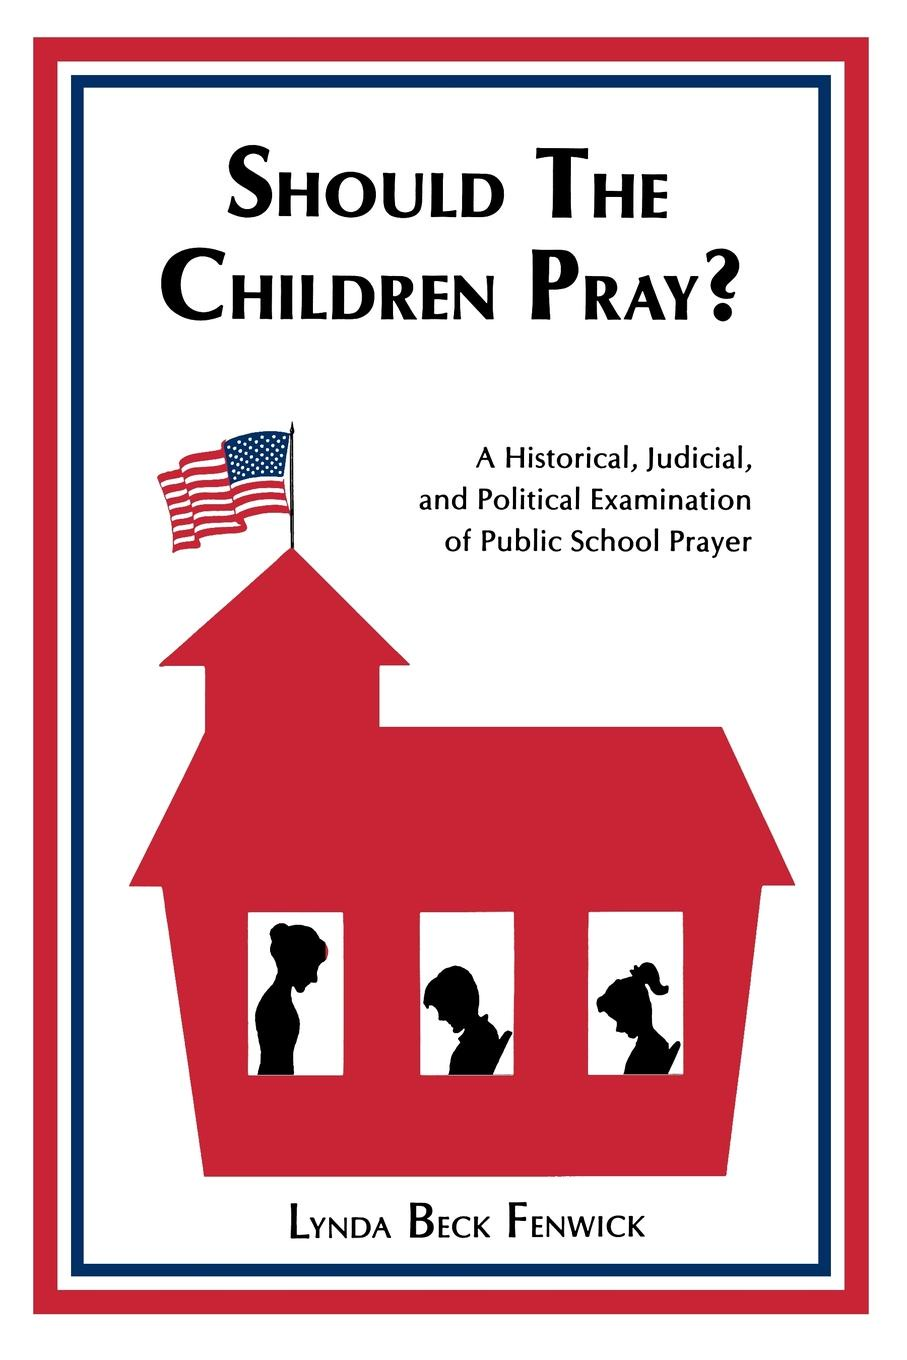 Should the Children Pray?. A Historical, Judicial, and Political Examination of Public School Prayer. Lynda B. Fenwick